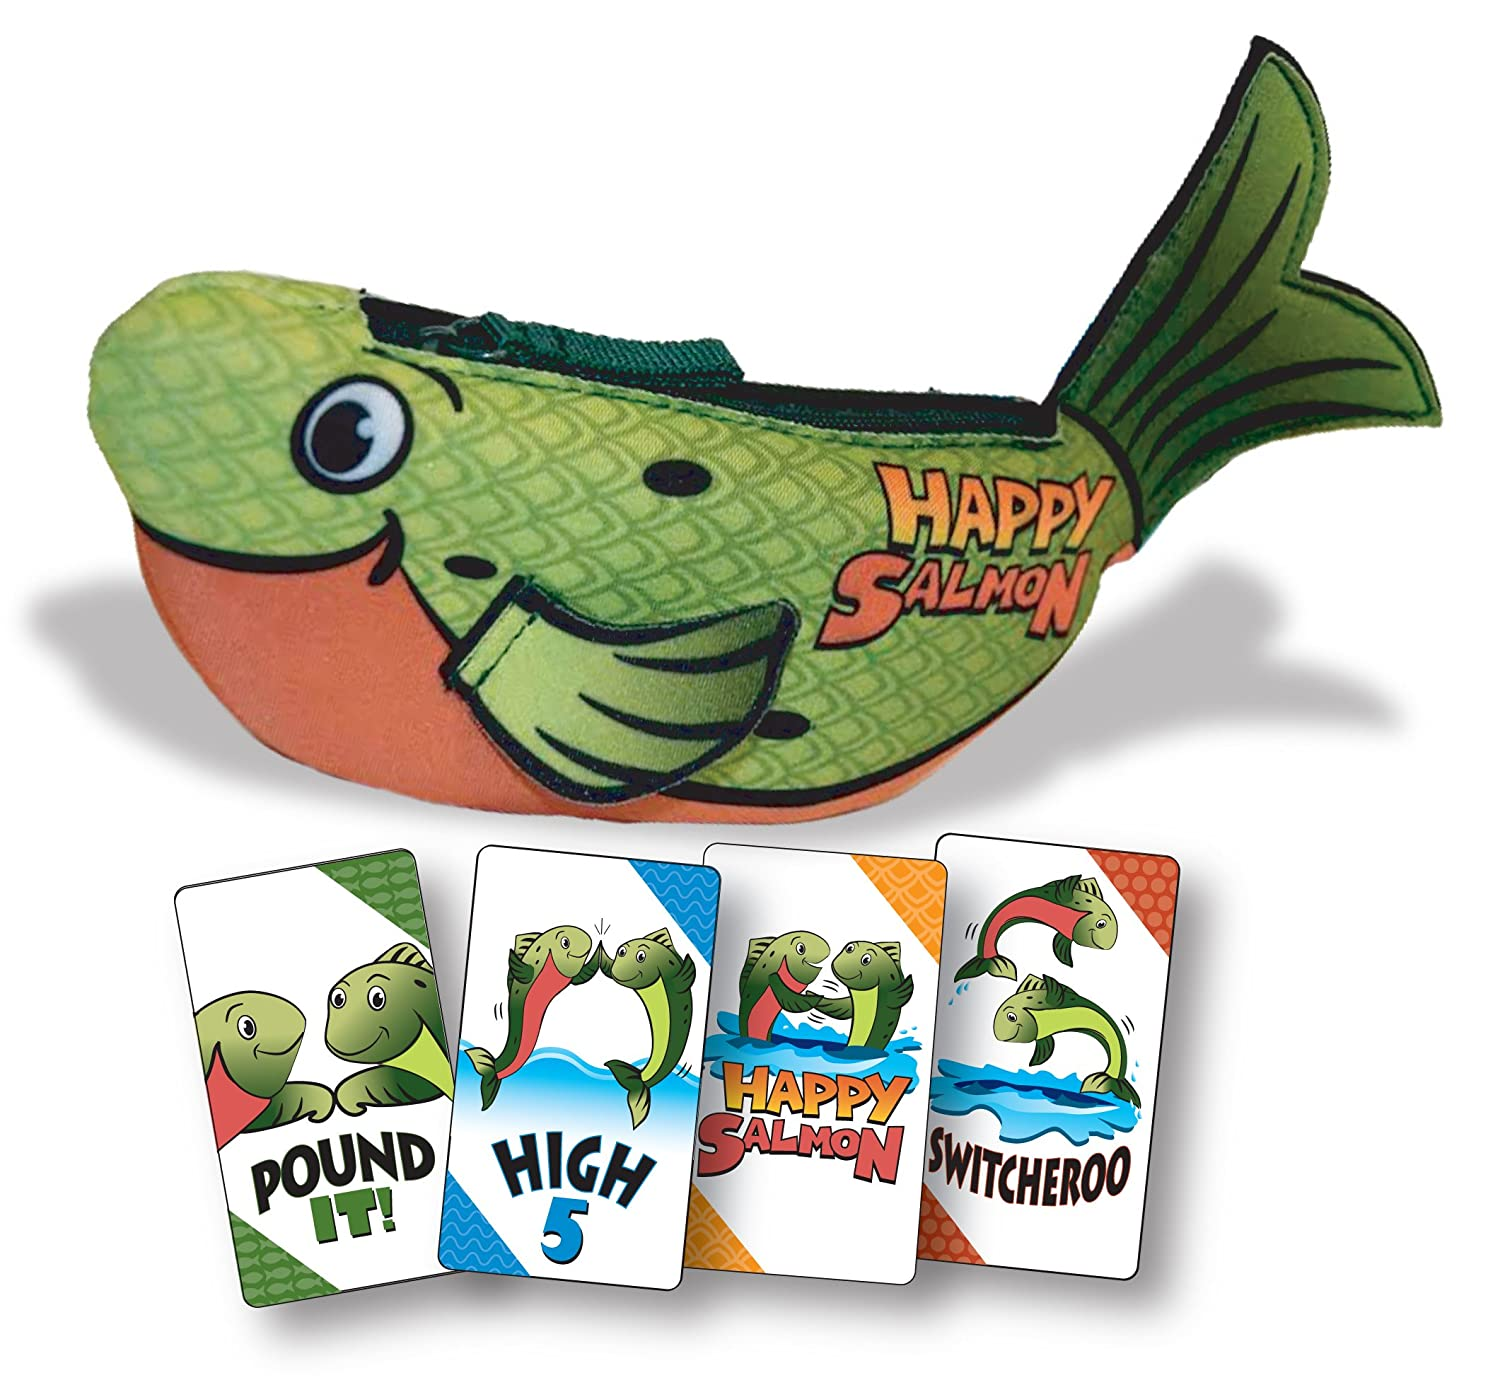 You can buy the Happy Salmon Card Game here